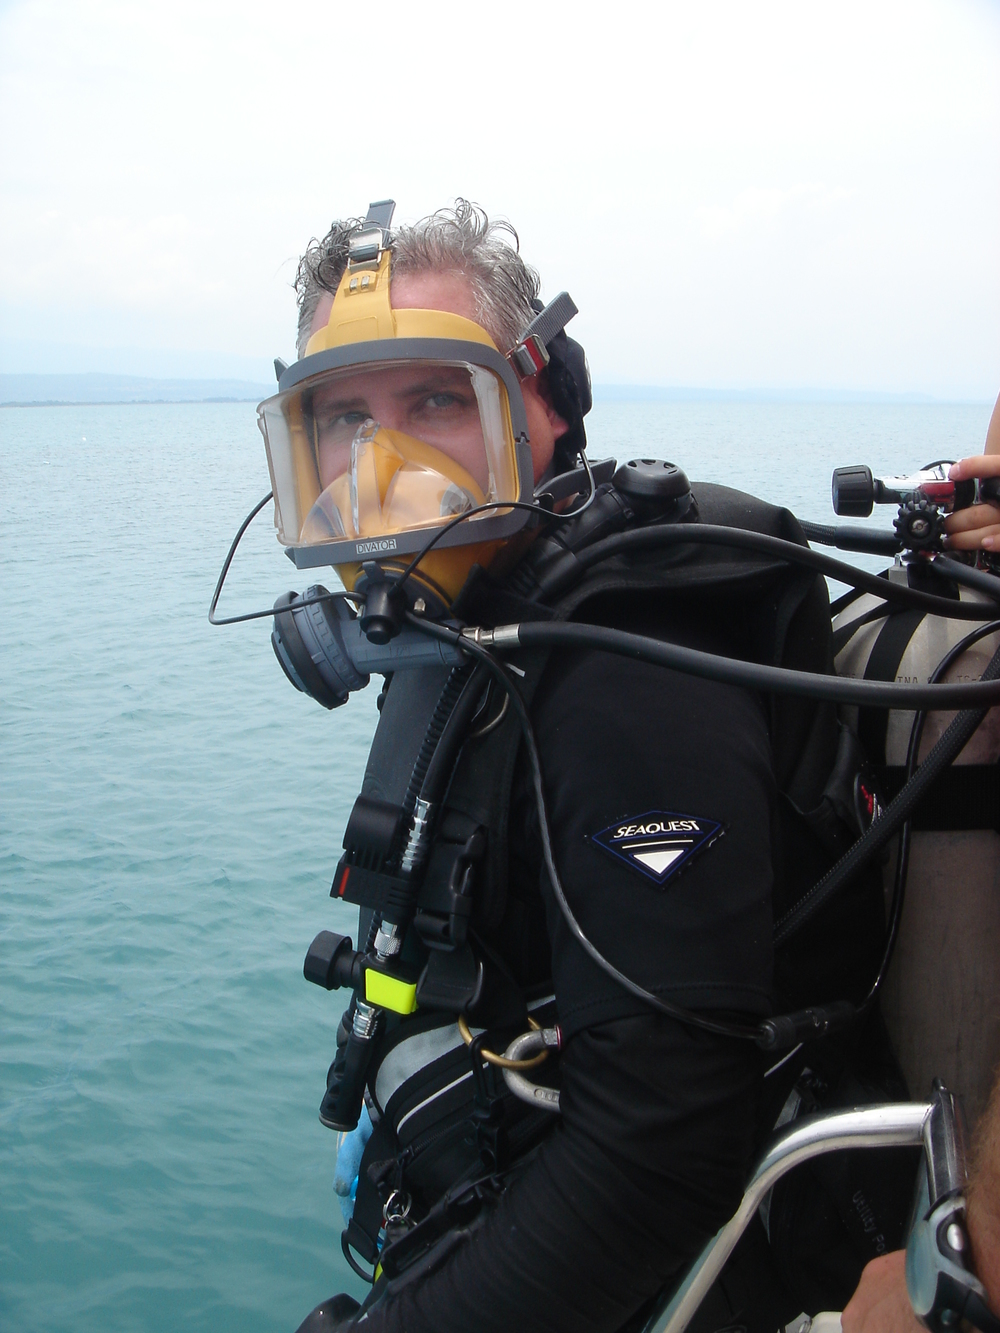 Capt (Rtd) Patrick Enlow on the Isabella Survey